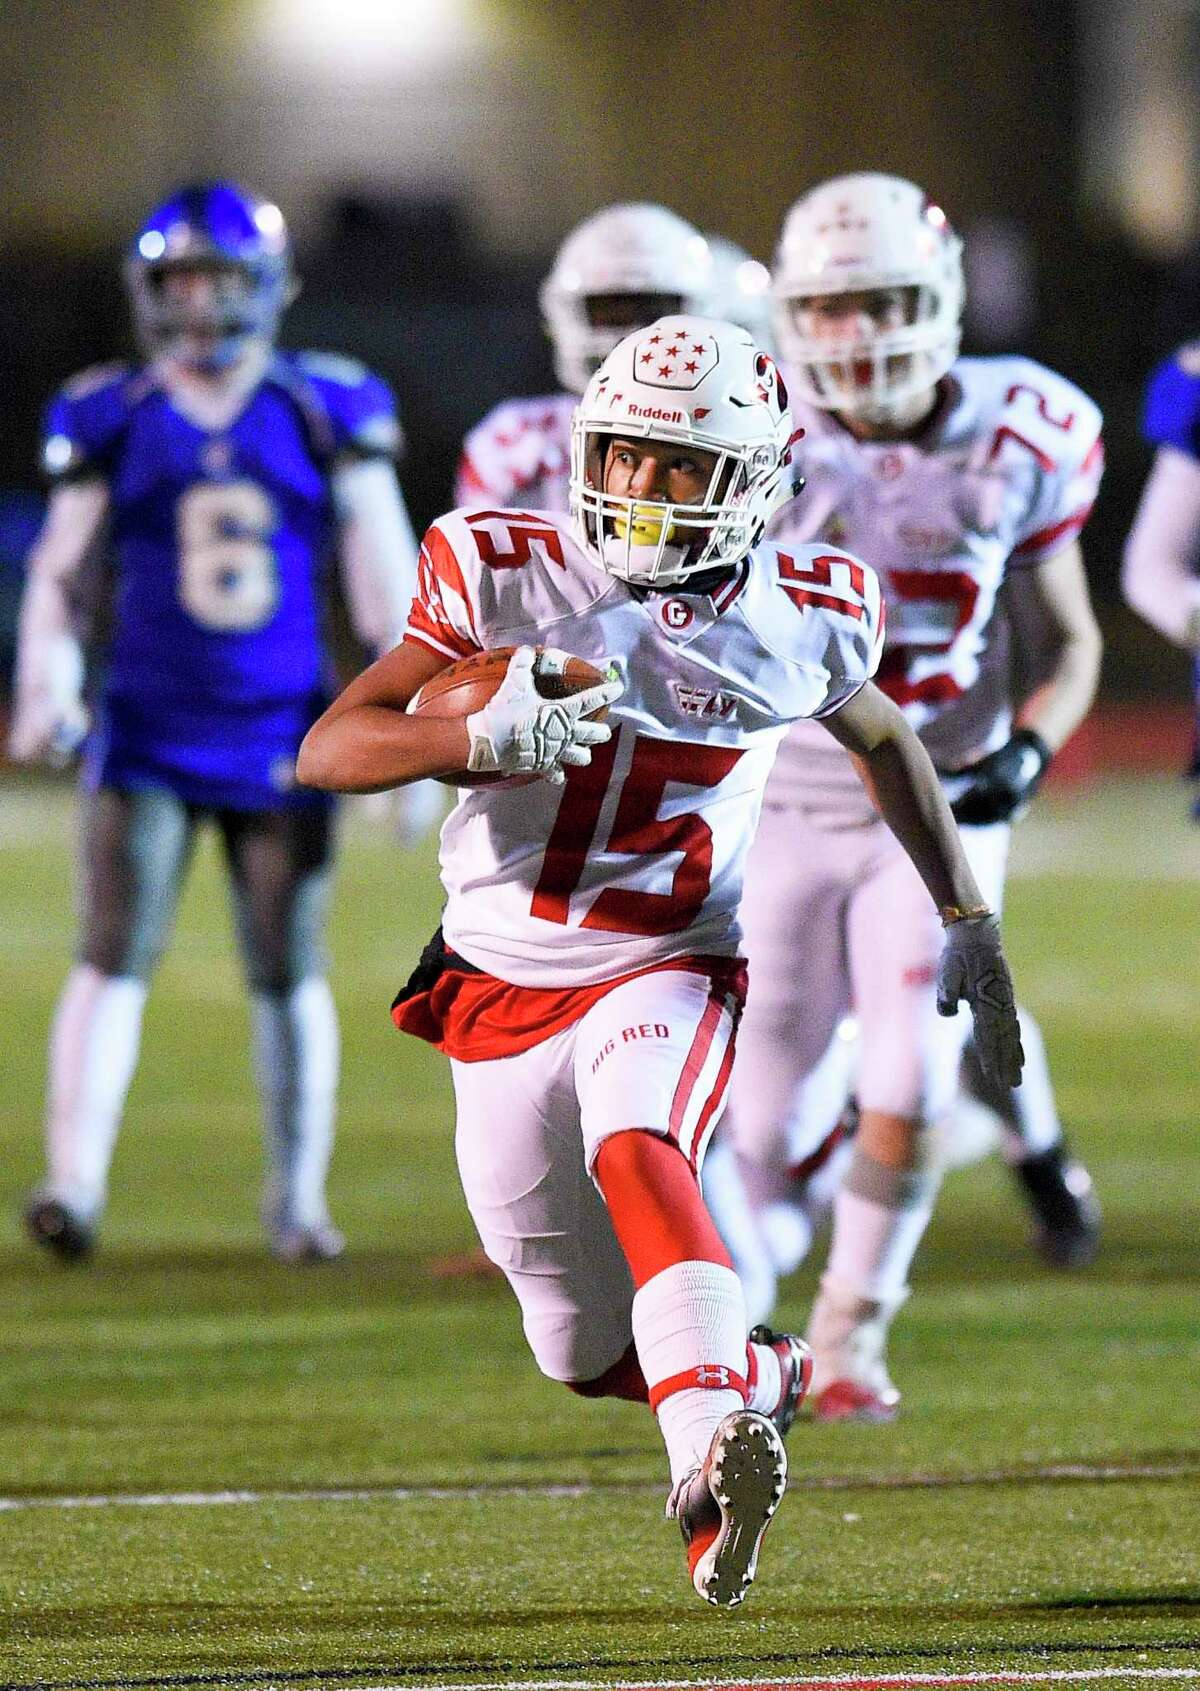 Greenwich'S AJ Barber runs in the open against Fairfield Ludlowe at Taft Field in Fairfield. Greenwich will travel on Thanksgiving Day to face rival Staples.